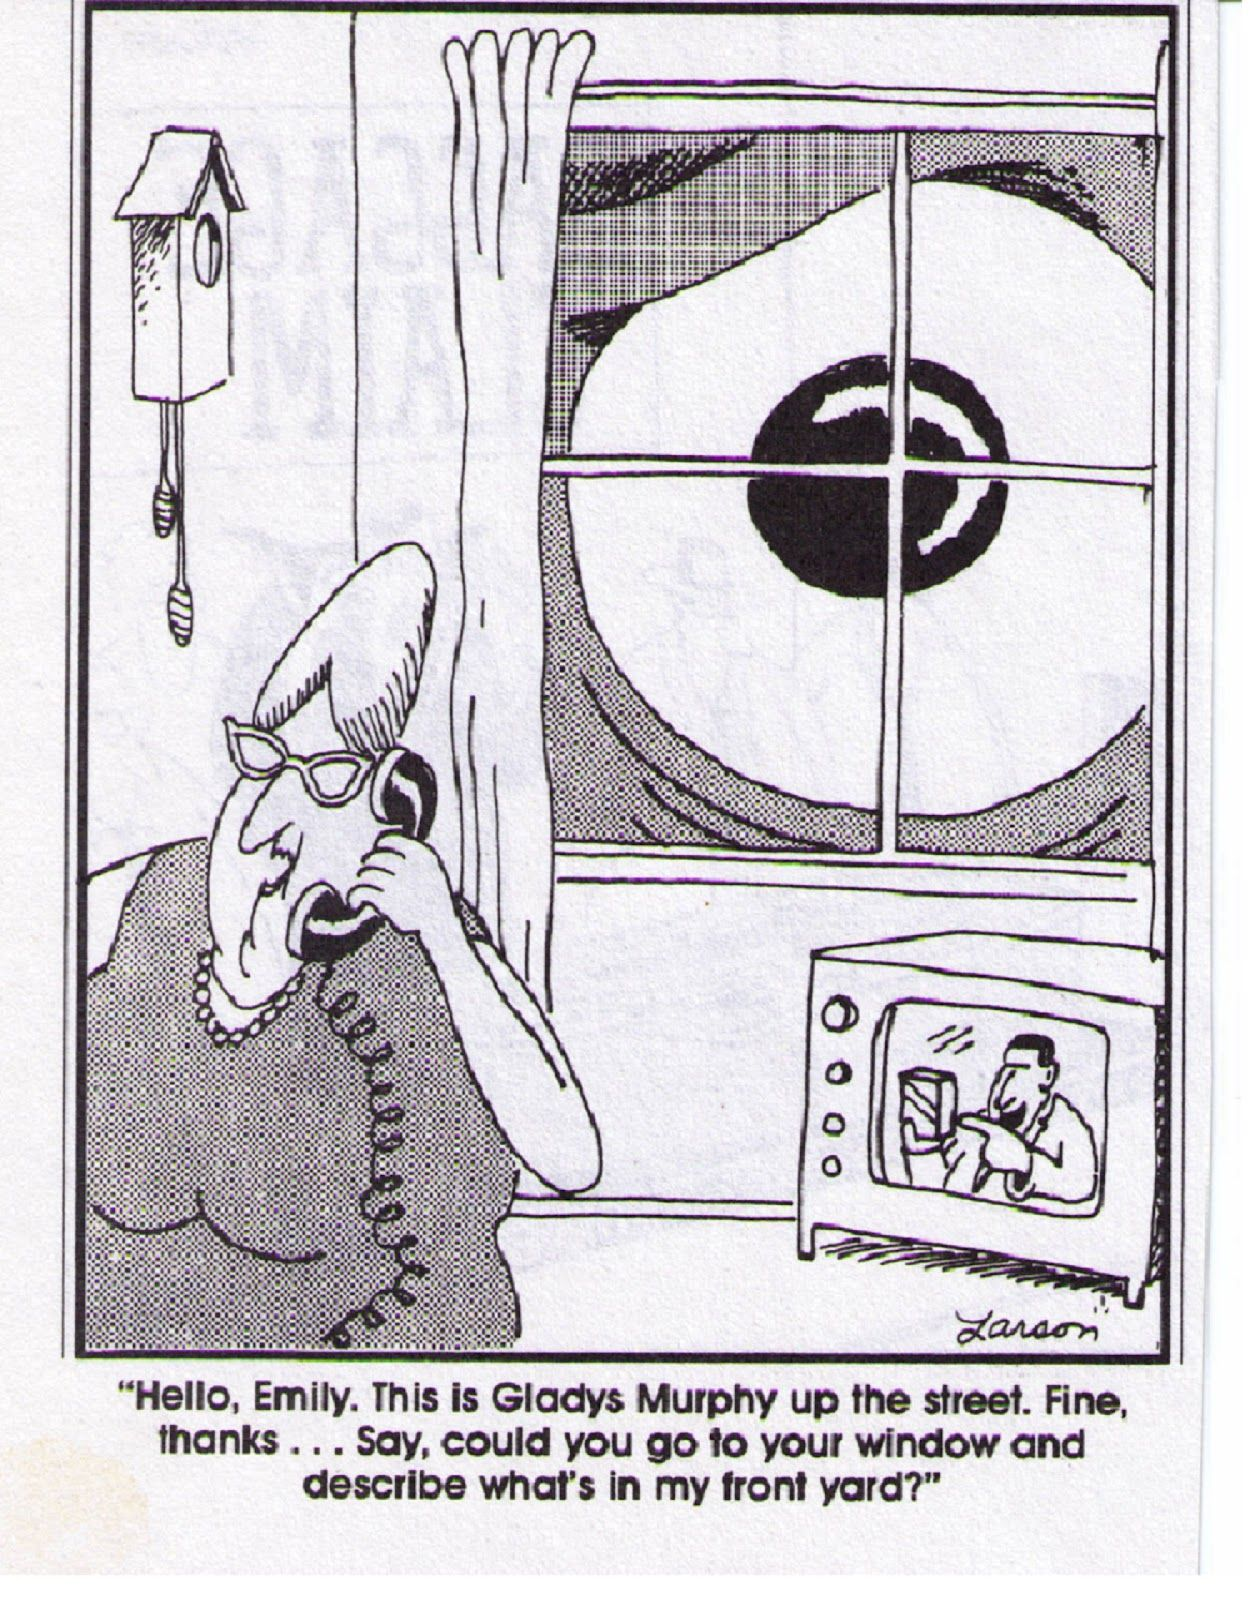 Splain this Far Side cartoon to me Archive Straight Dope